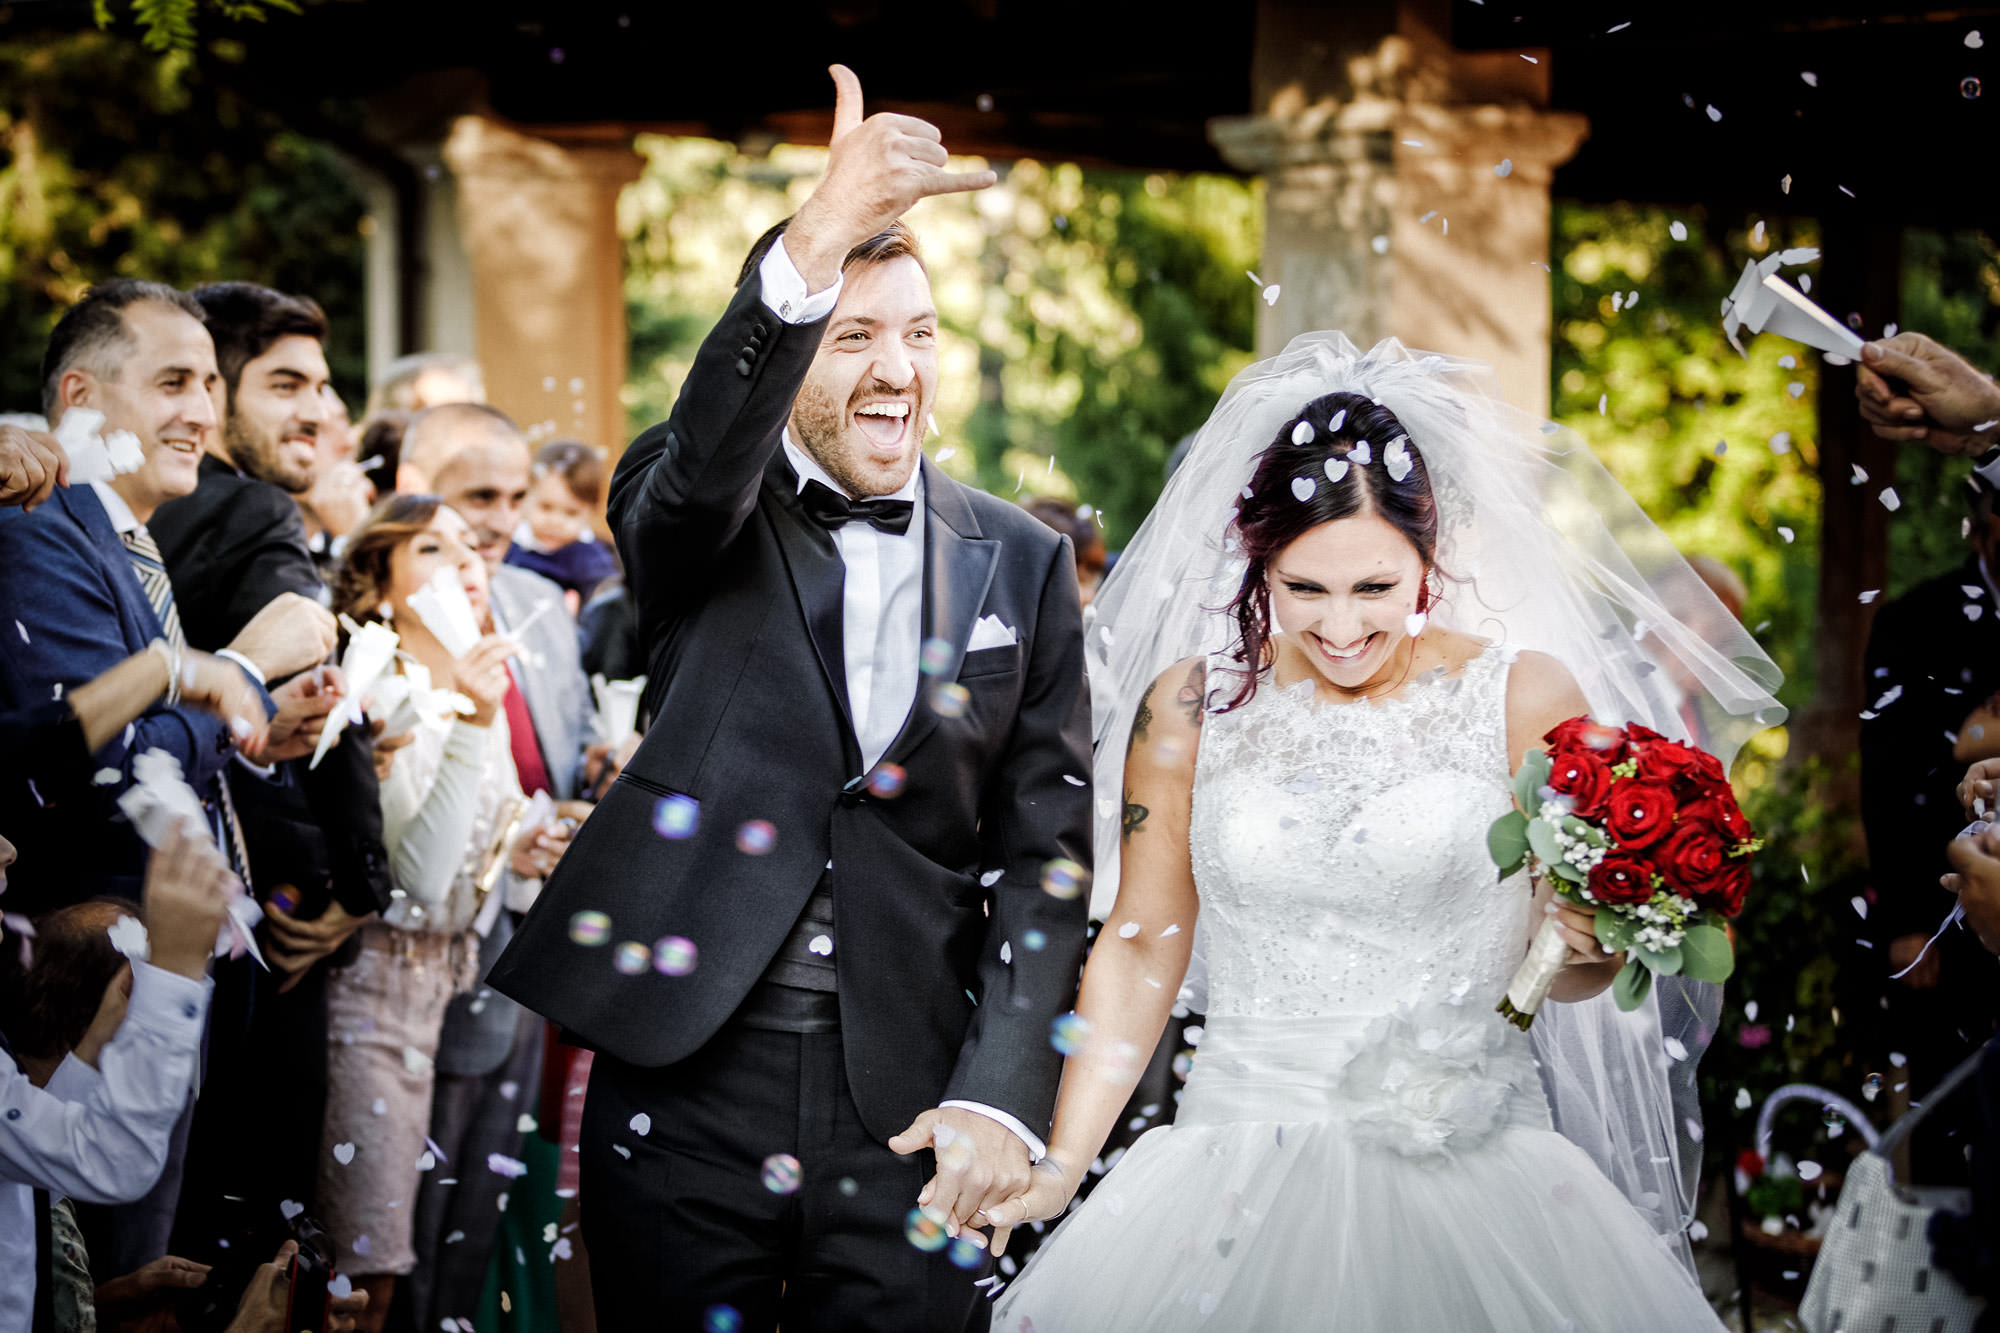 Umbria top wedding photos